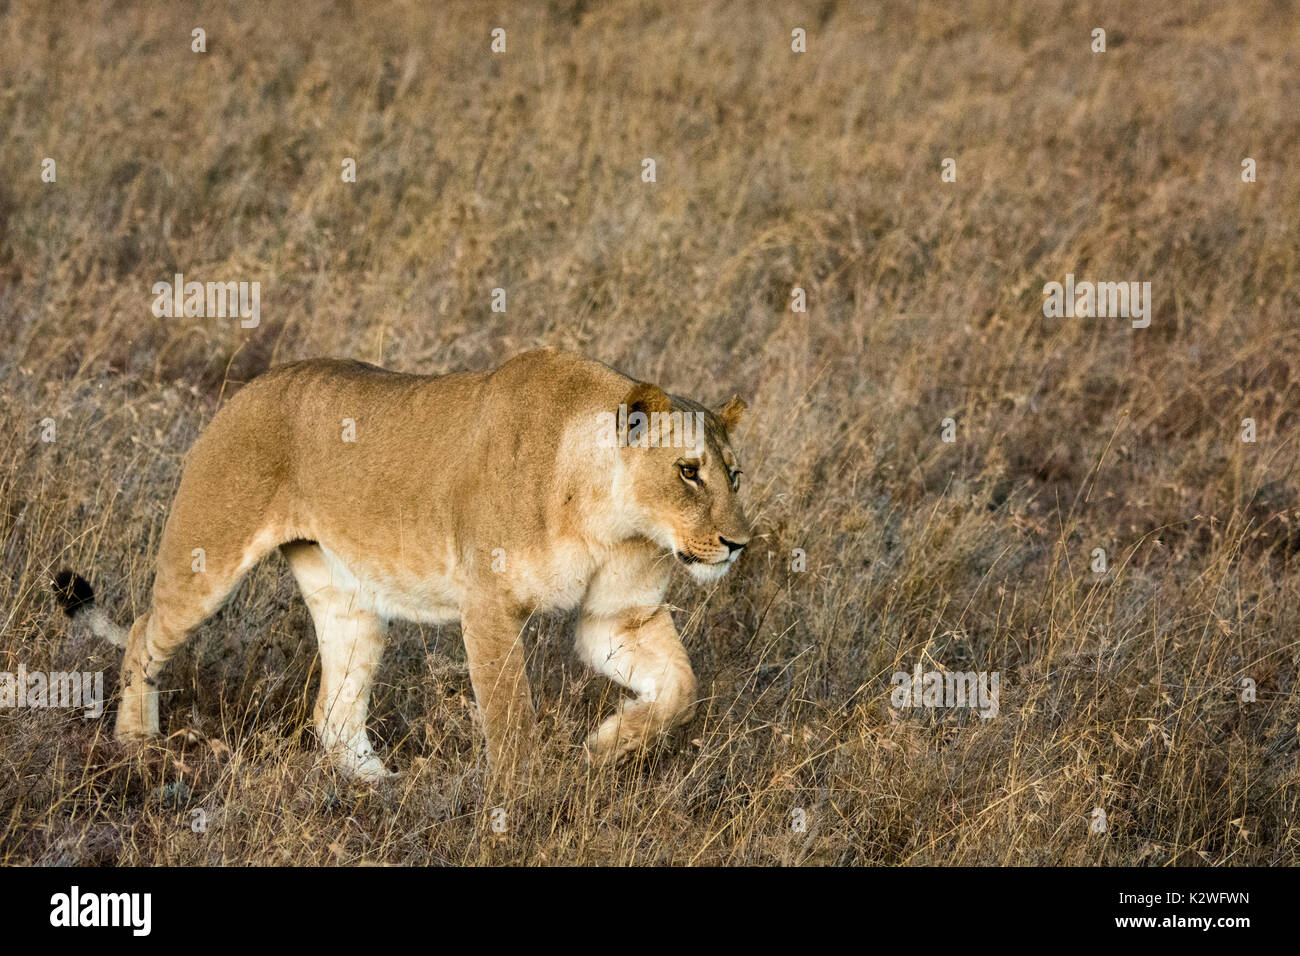 Lioness In Grass Stock Photos & Lioness In Grass Stock ...